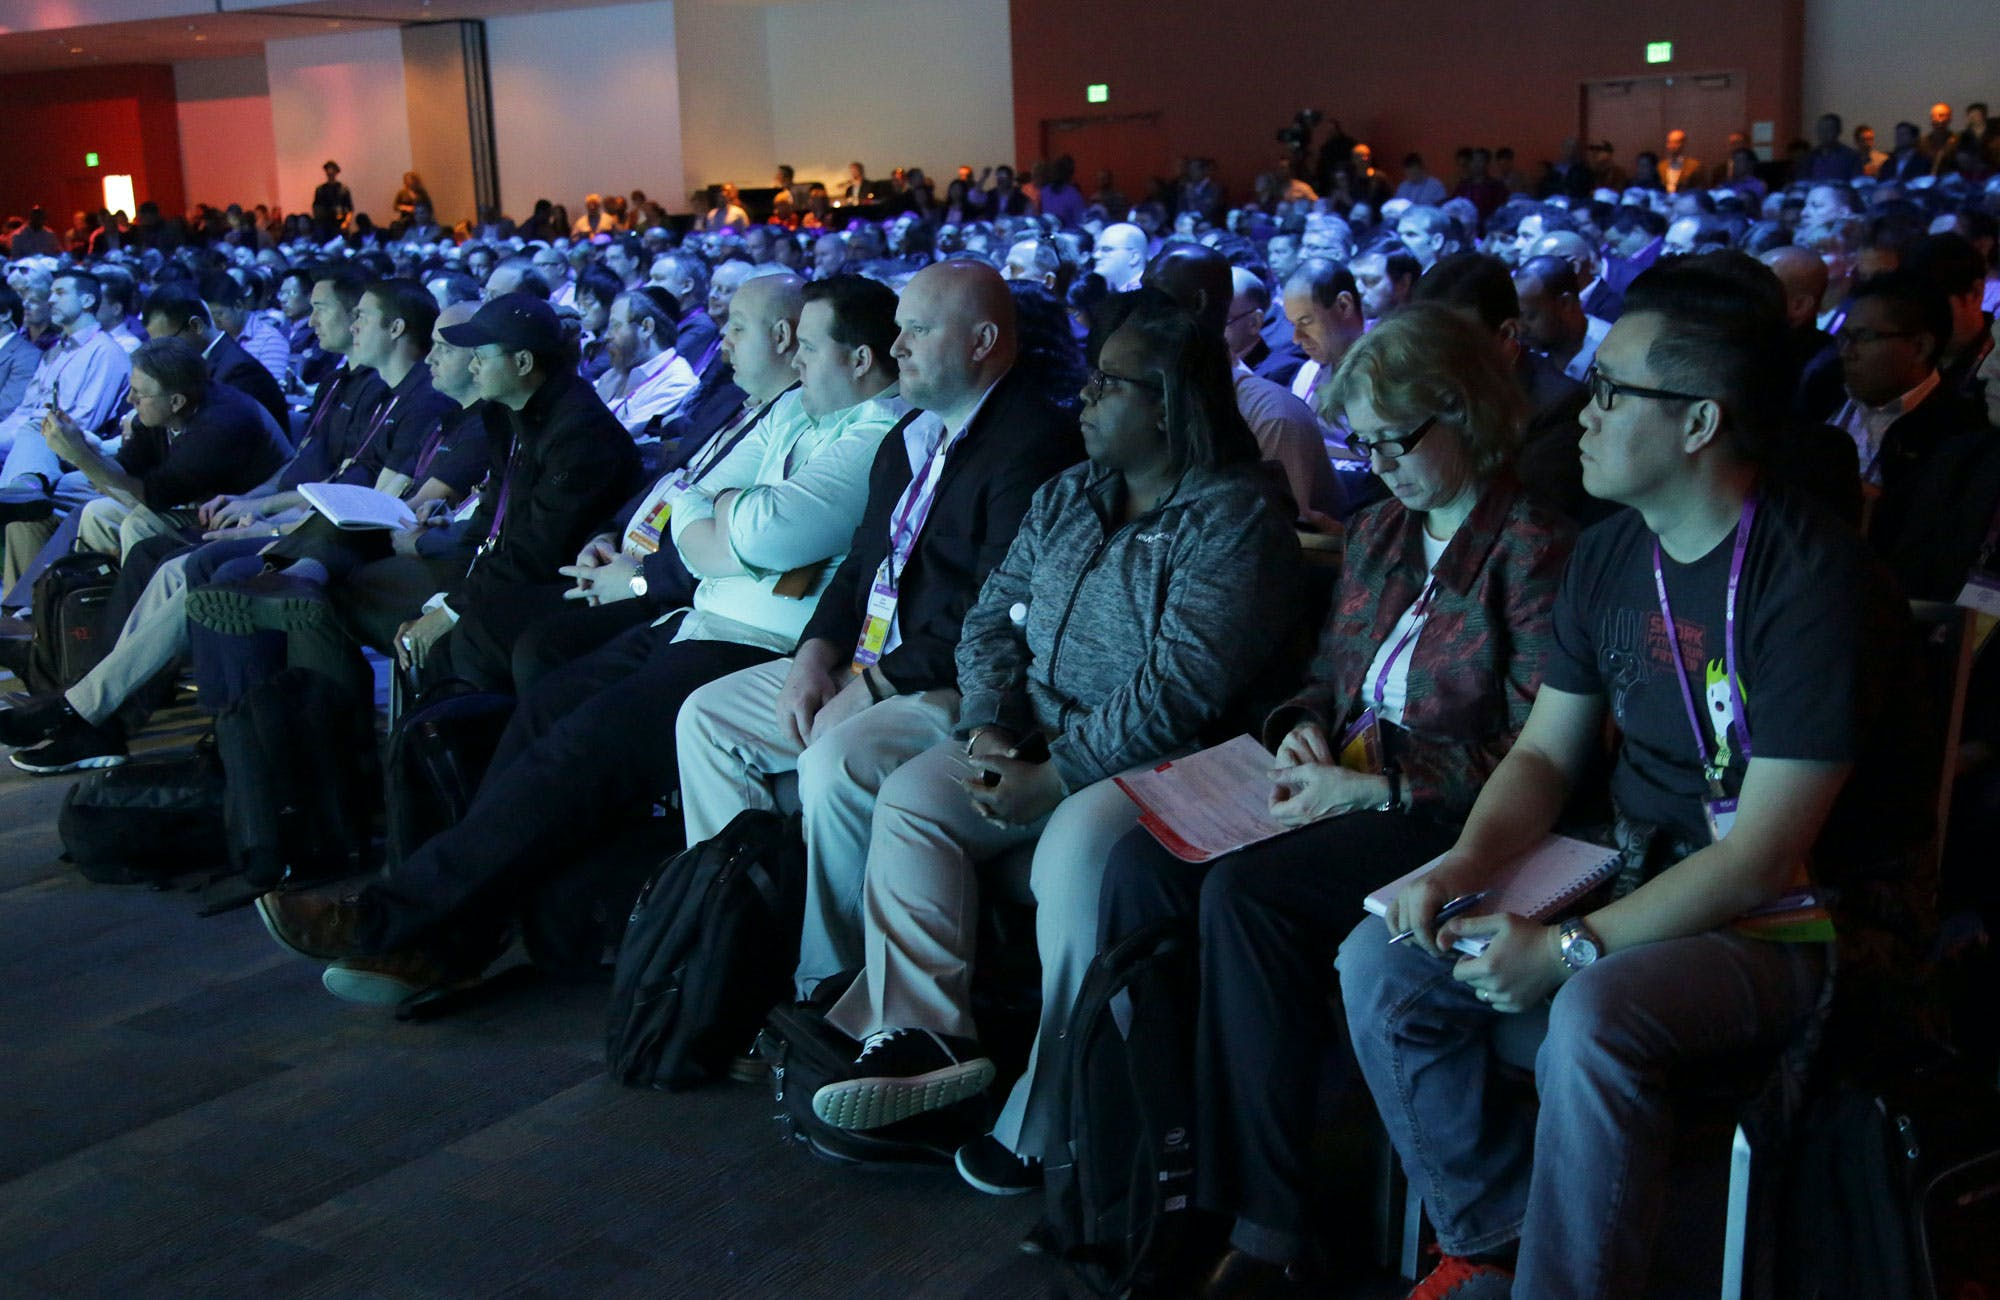 Audience members at the RSA Conference at San Francisco's Moscone Center, March 1, 2016. Security experts now worry that if Apple is forced to create software to bypass its password system, it will be a precursor to many more government requests. (Jim Wilson/The New York Times)